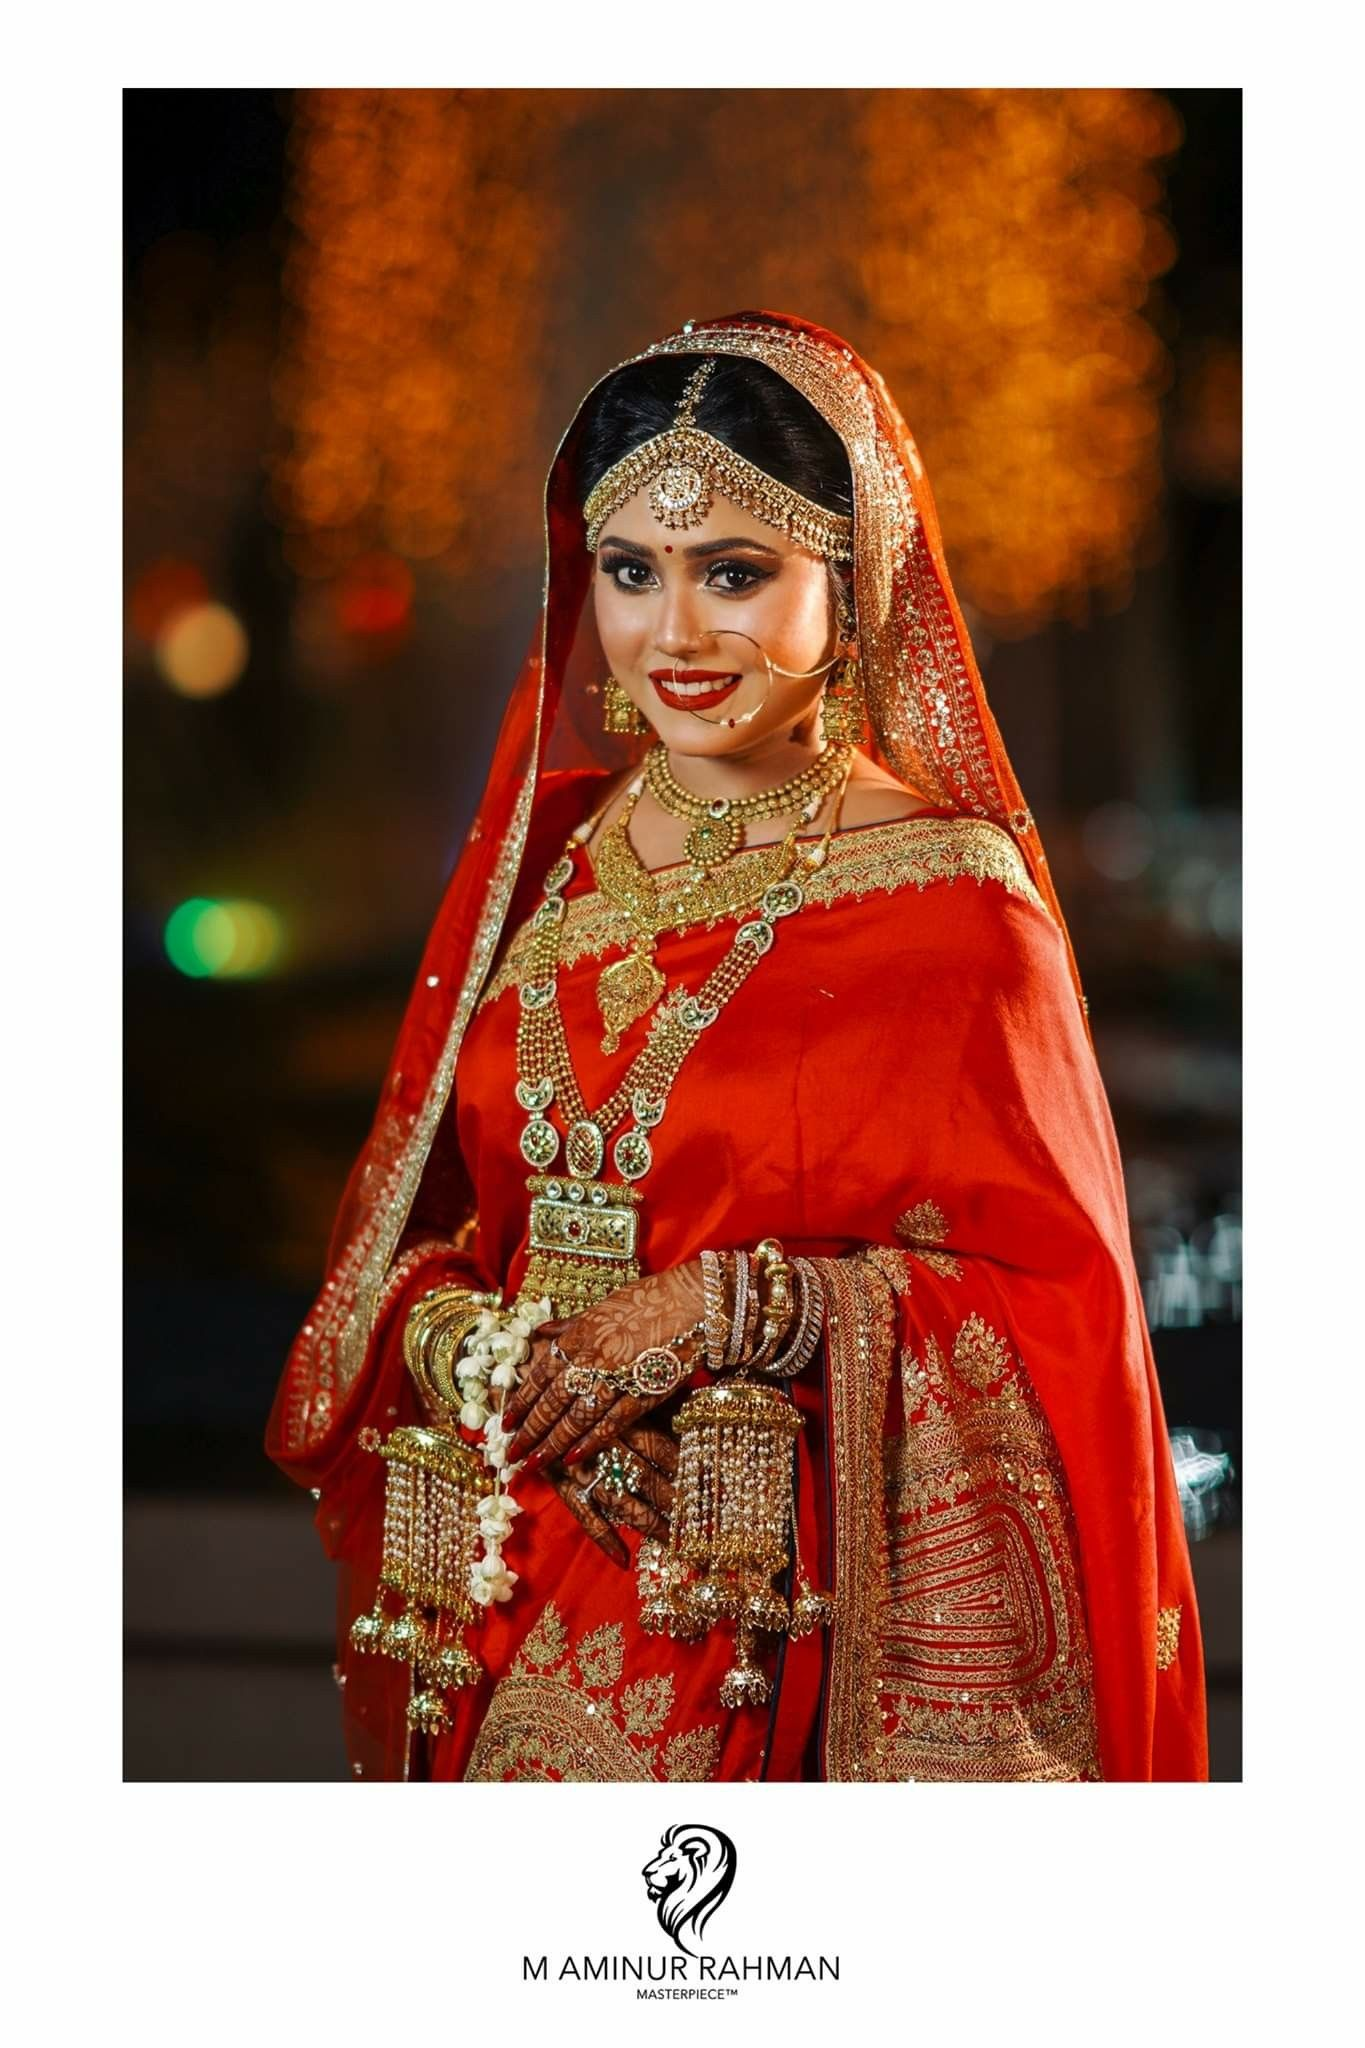 Pin By Ummay Sunflower On Nikah Dress Indian Bride Marriage Dress Bridal Beauty,Long Dress To Wear To A Wedding